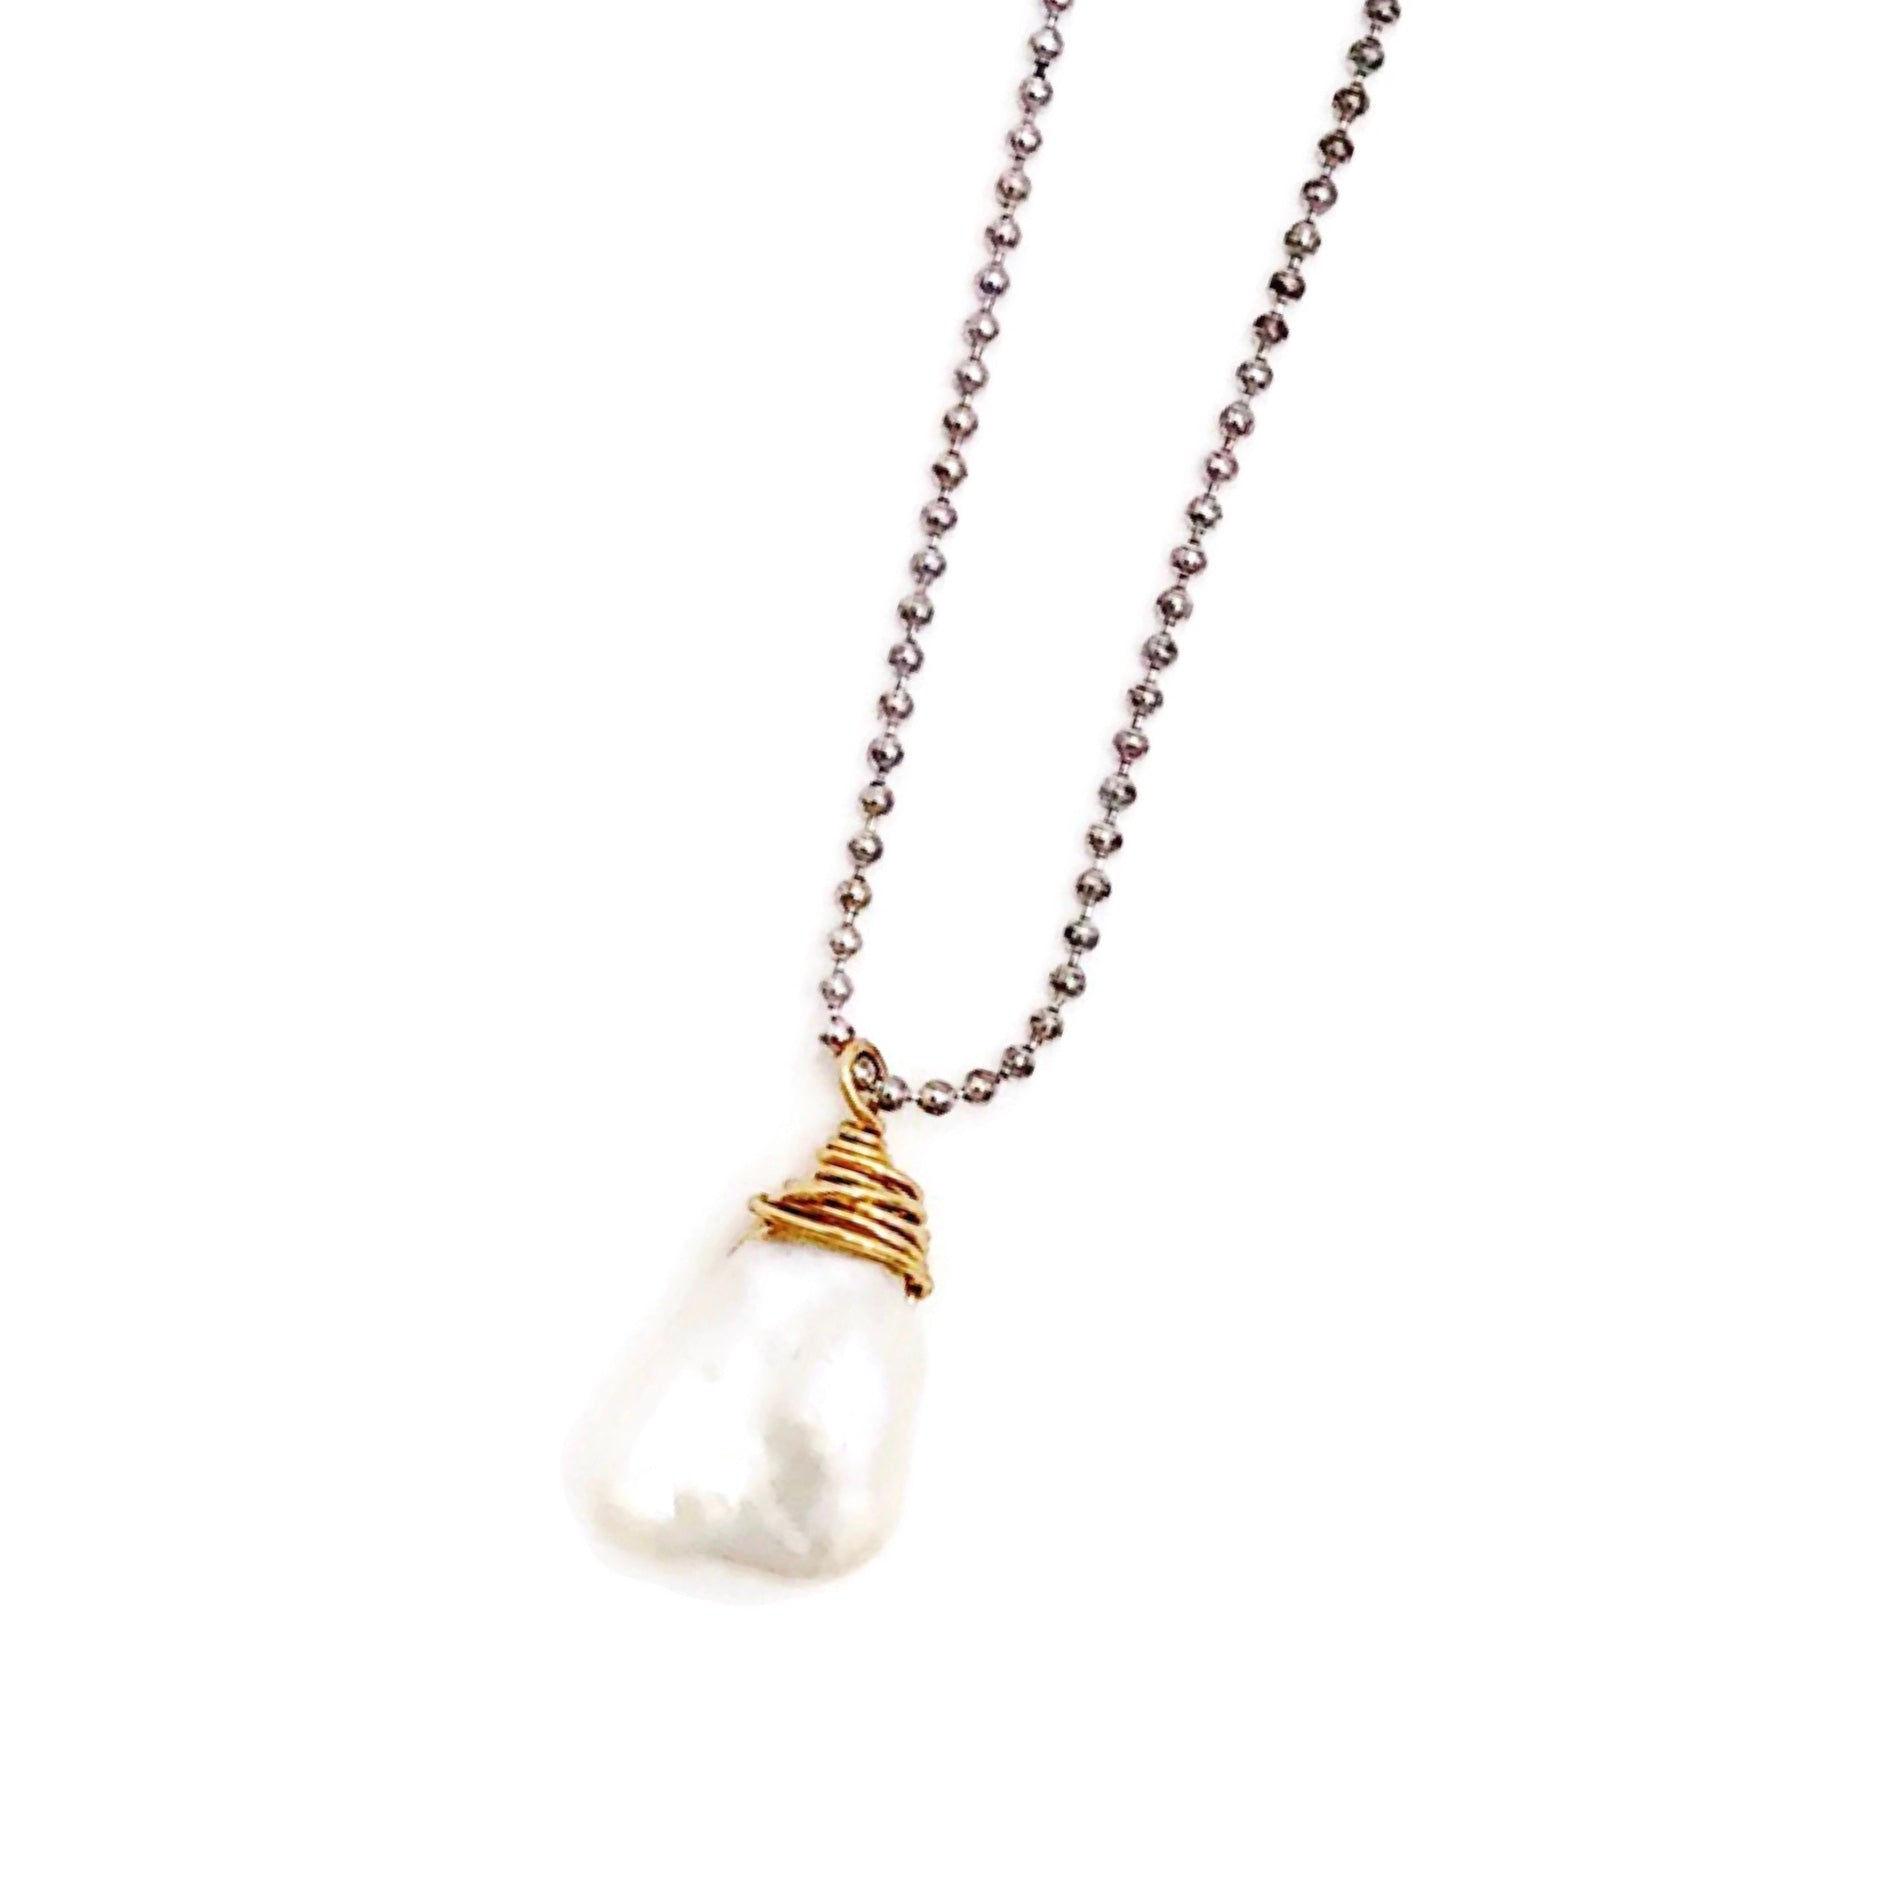 Keshi Pearl Wrapped in Gold Filled Wire Necklace